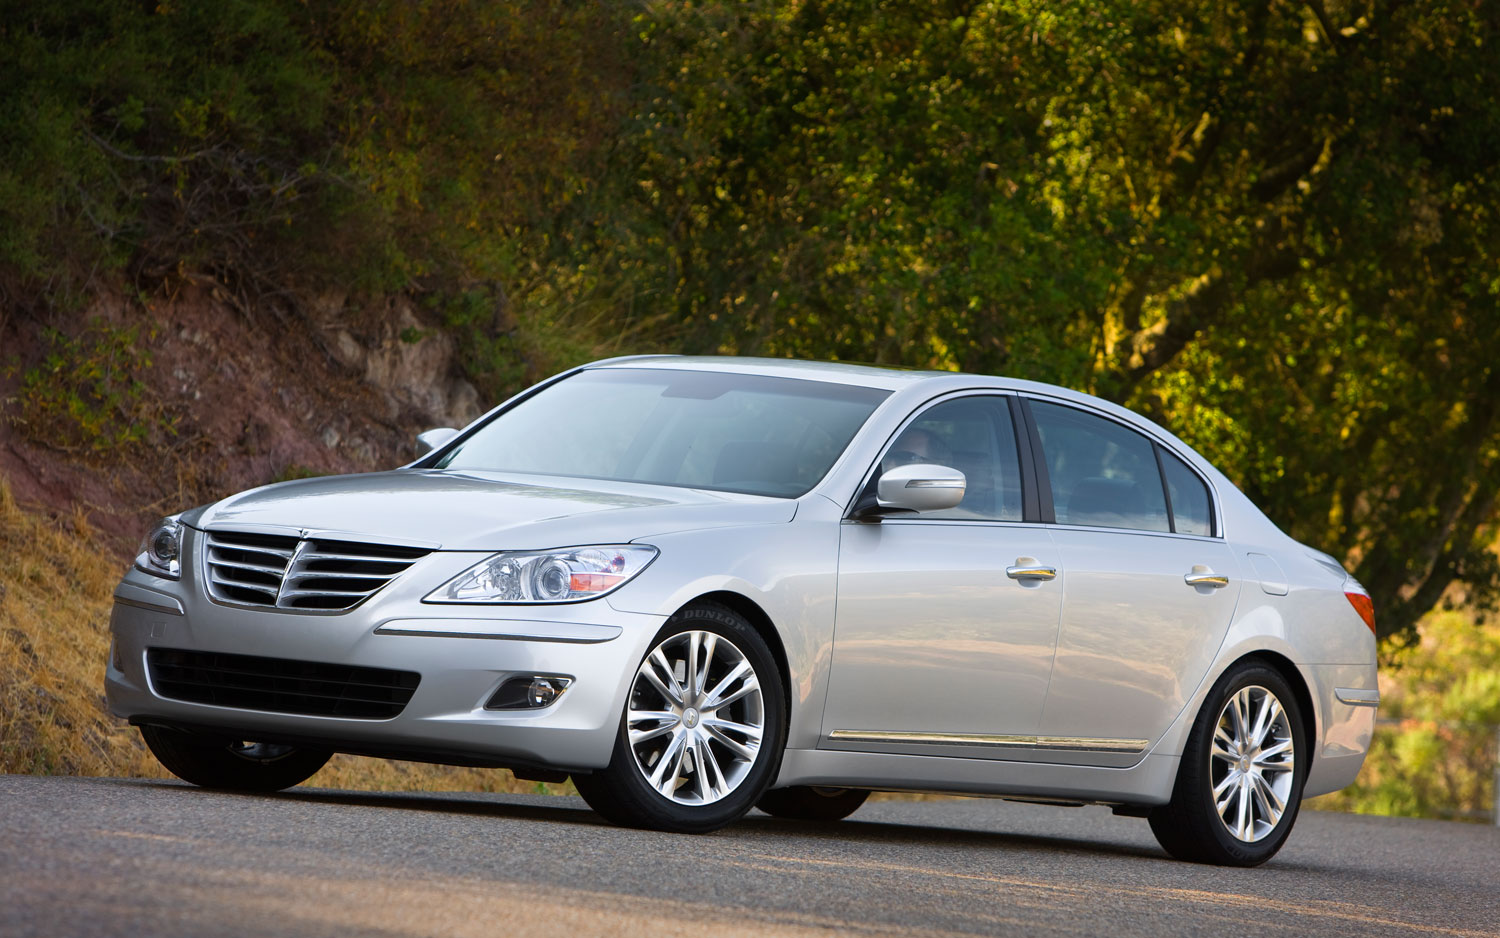 2011 Hyundai Genesis Sedan 46  Editors' Notebook. Affordable Garage Door Services. 96 Inch Closet Doors. Sliding Screen Door Replacement Parts. Overhead Door Track. Hotels In Door County Wi. Kitchen Garage Door. Pet Door. Garage Door Repair Stamford